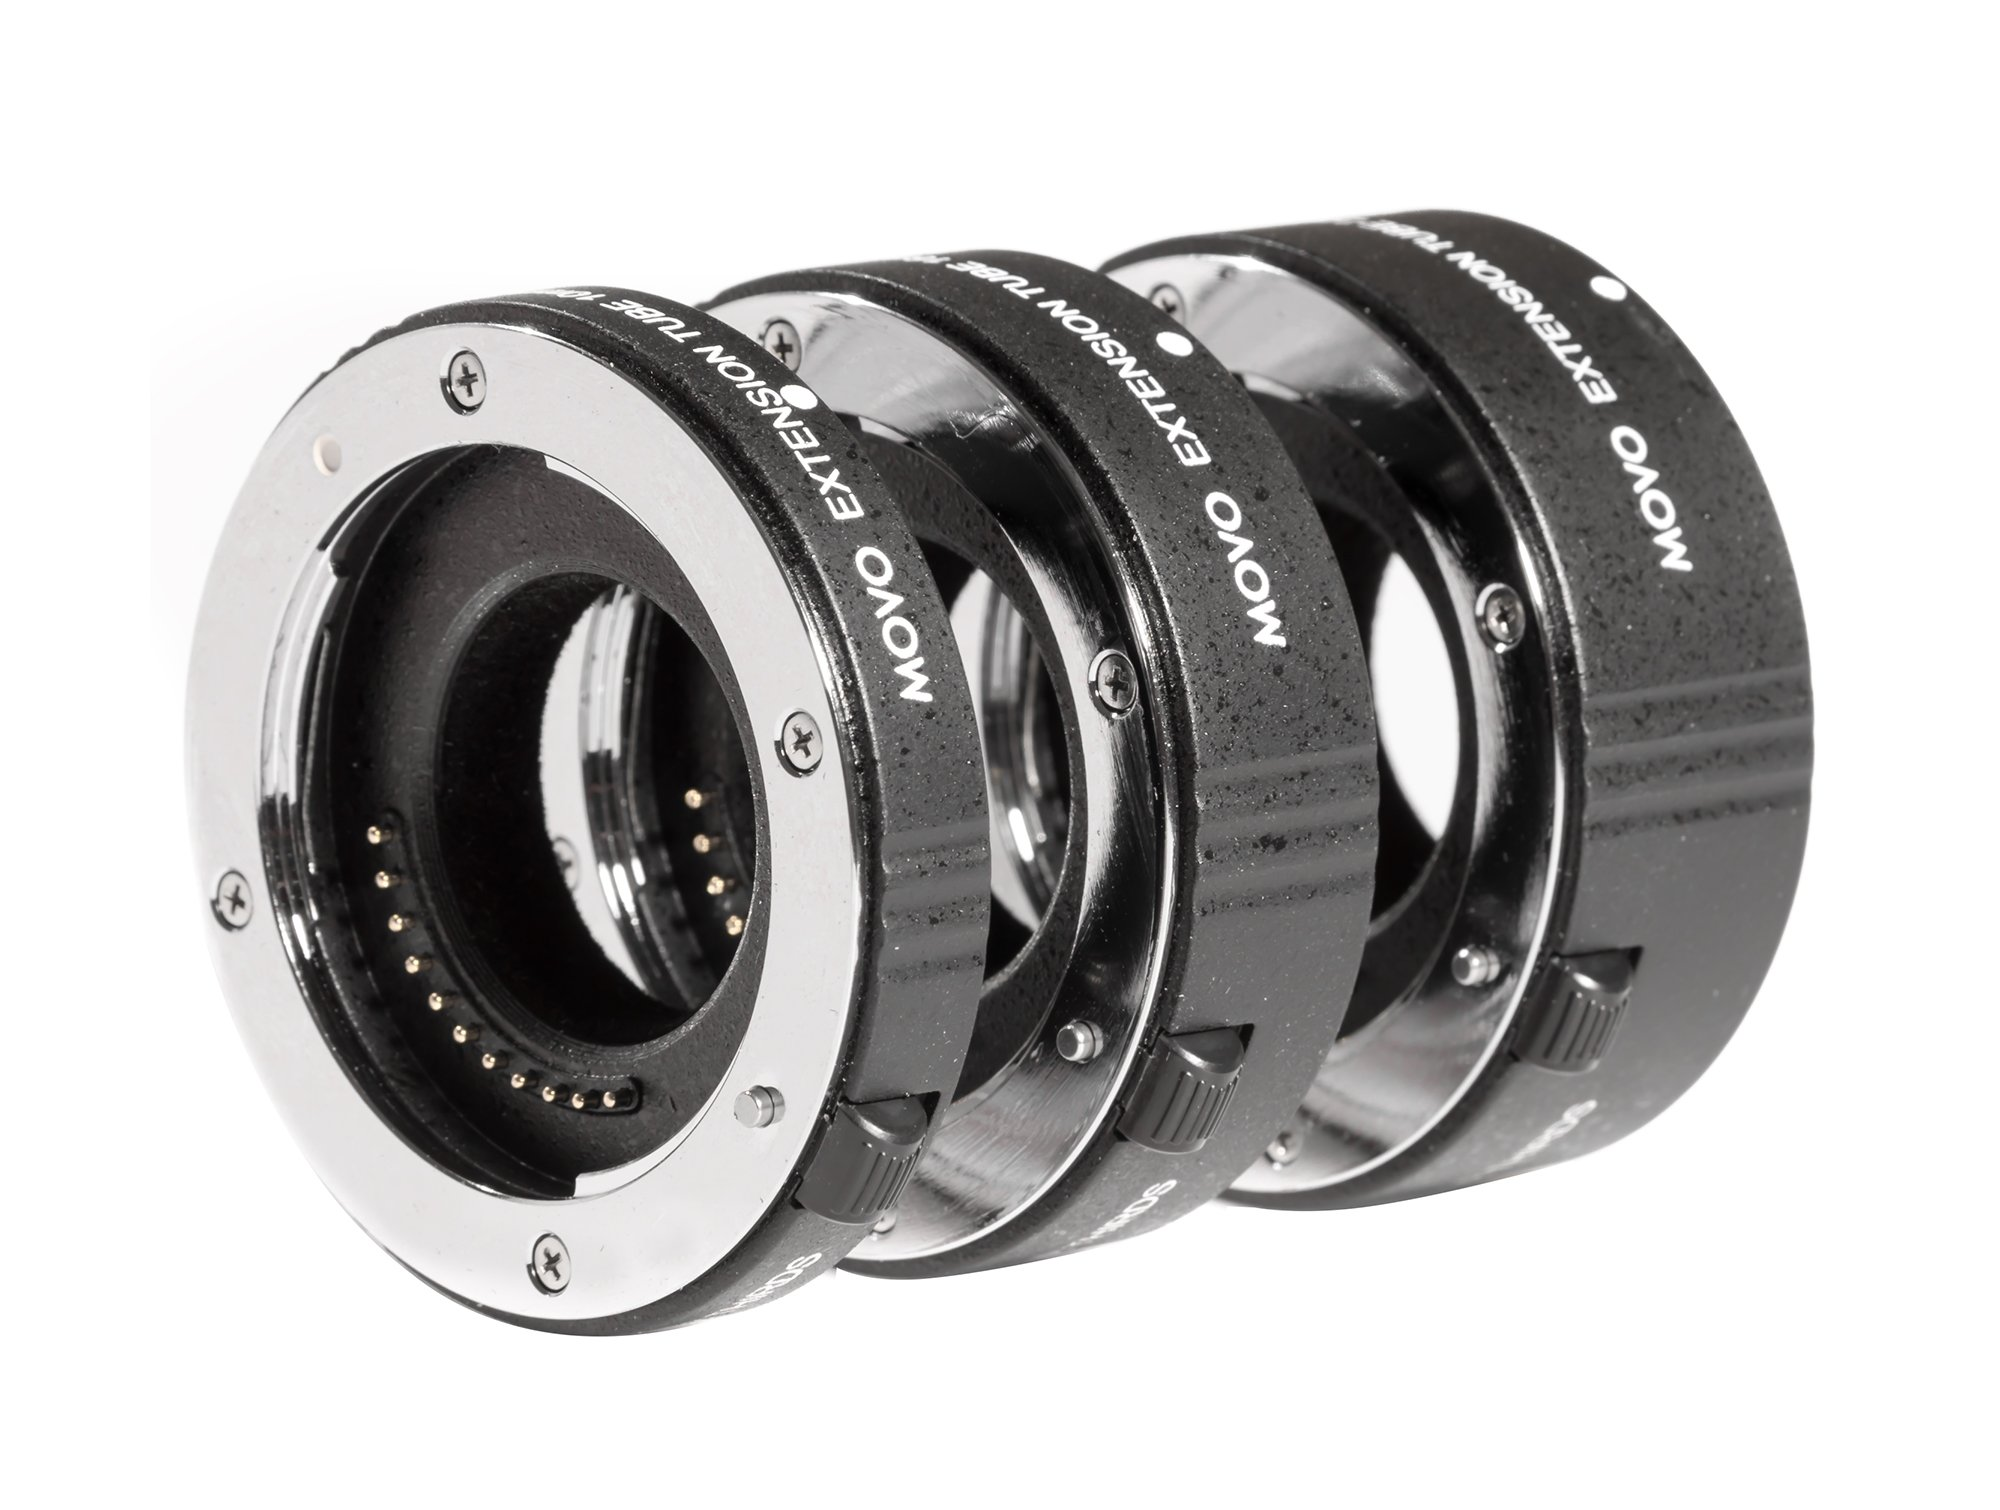 Movo MT-FT47 3-Piece AF Chrome Macro Extension Tube Set for Micro 4/3 Mount Mirrorless Camera System (Compatible with Olympus PEN, Panasonic Lumix, BMCC) with 10mm, 16mm & 21mm Tubes